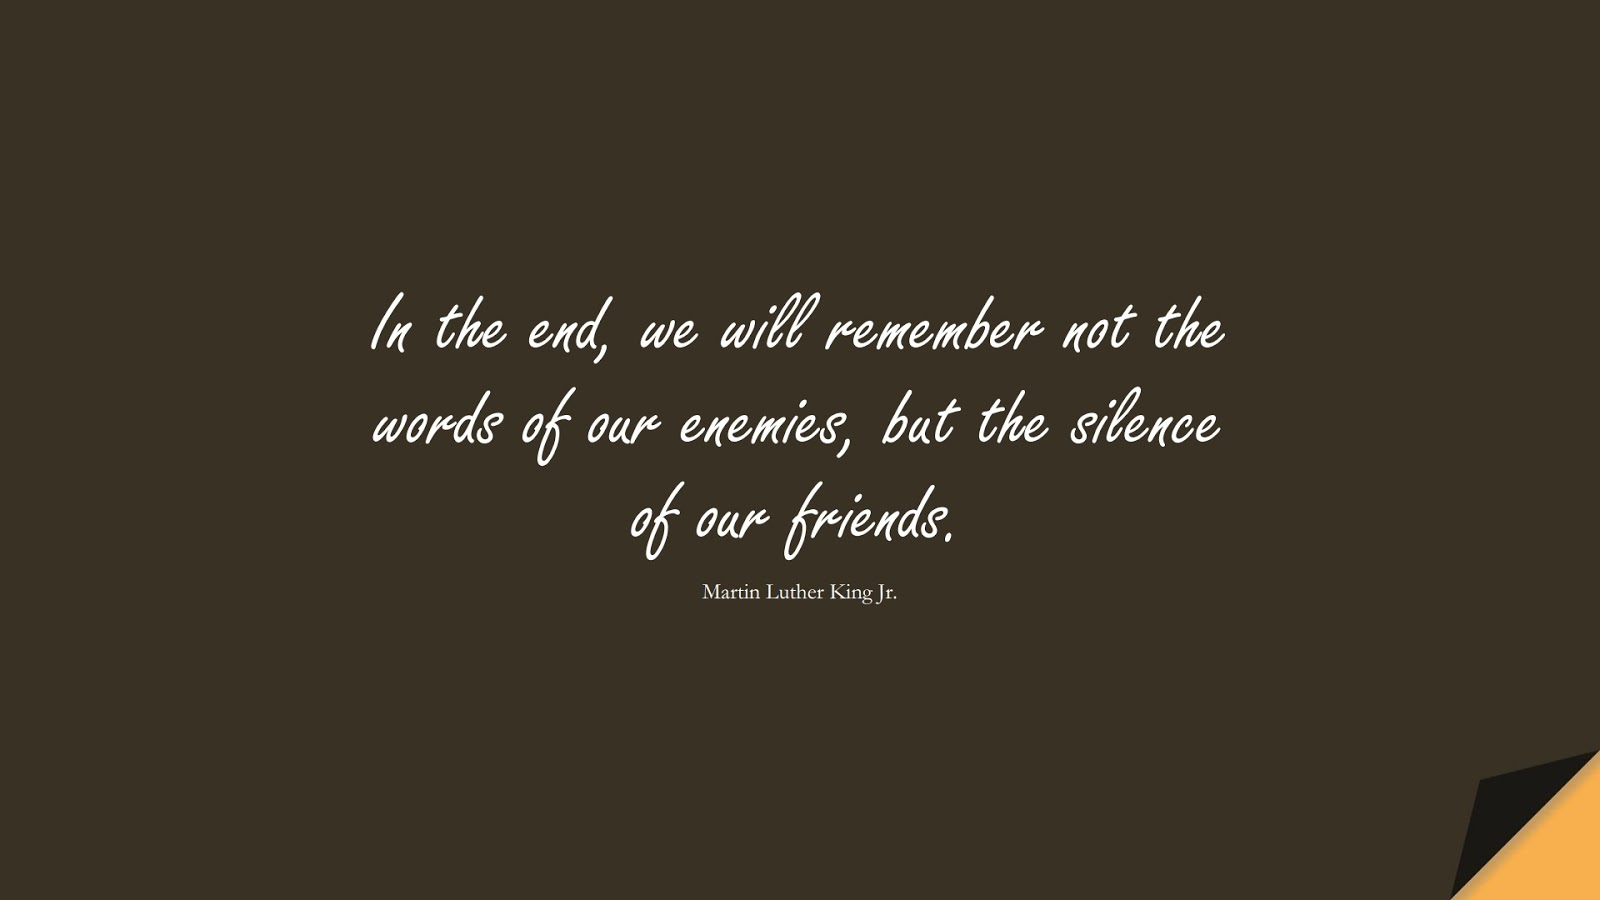 In the end, we will remember not the words of our enemies, but the silence of our friends. (Martin Luther King Jr.);  #FriendshipQuotes